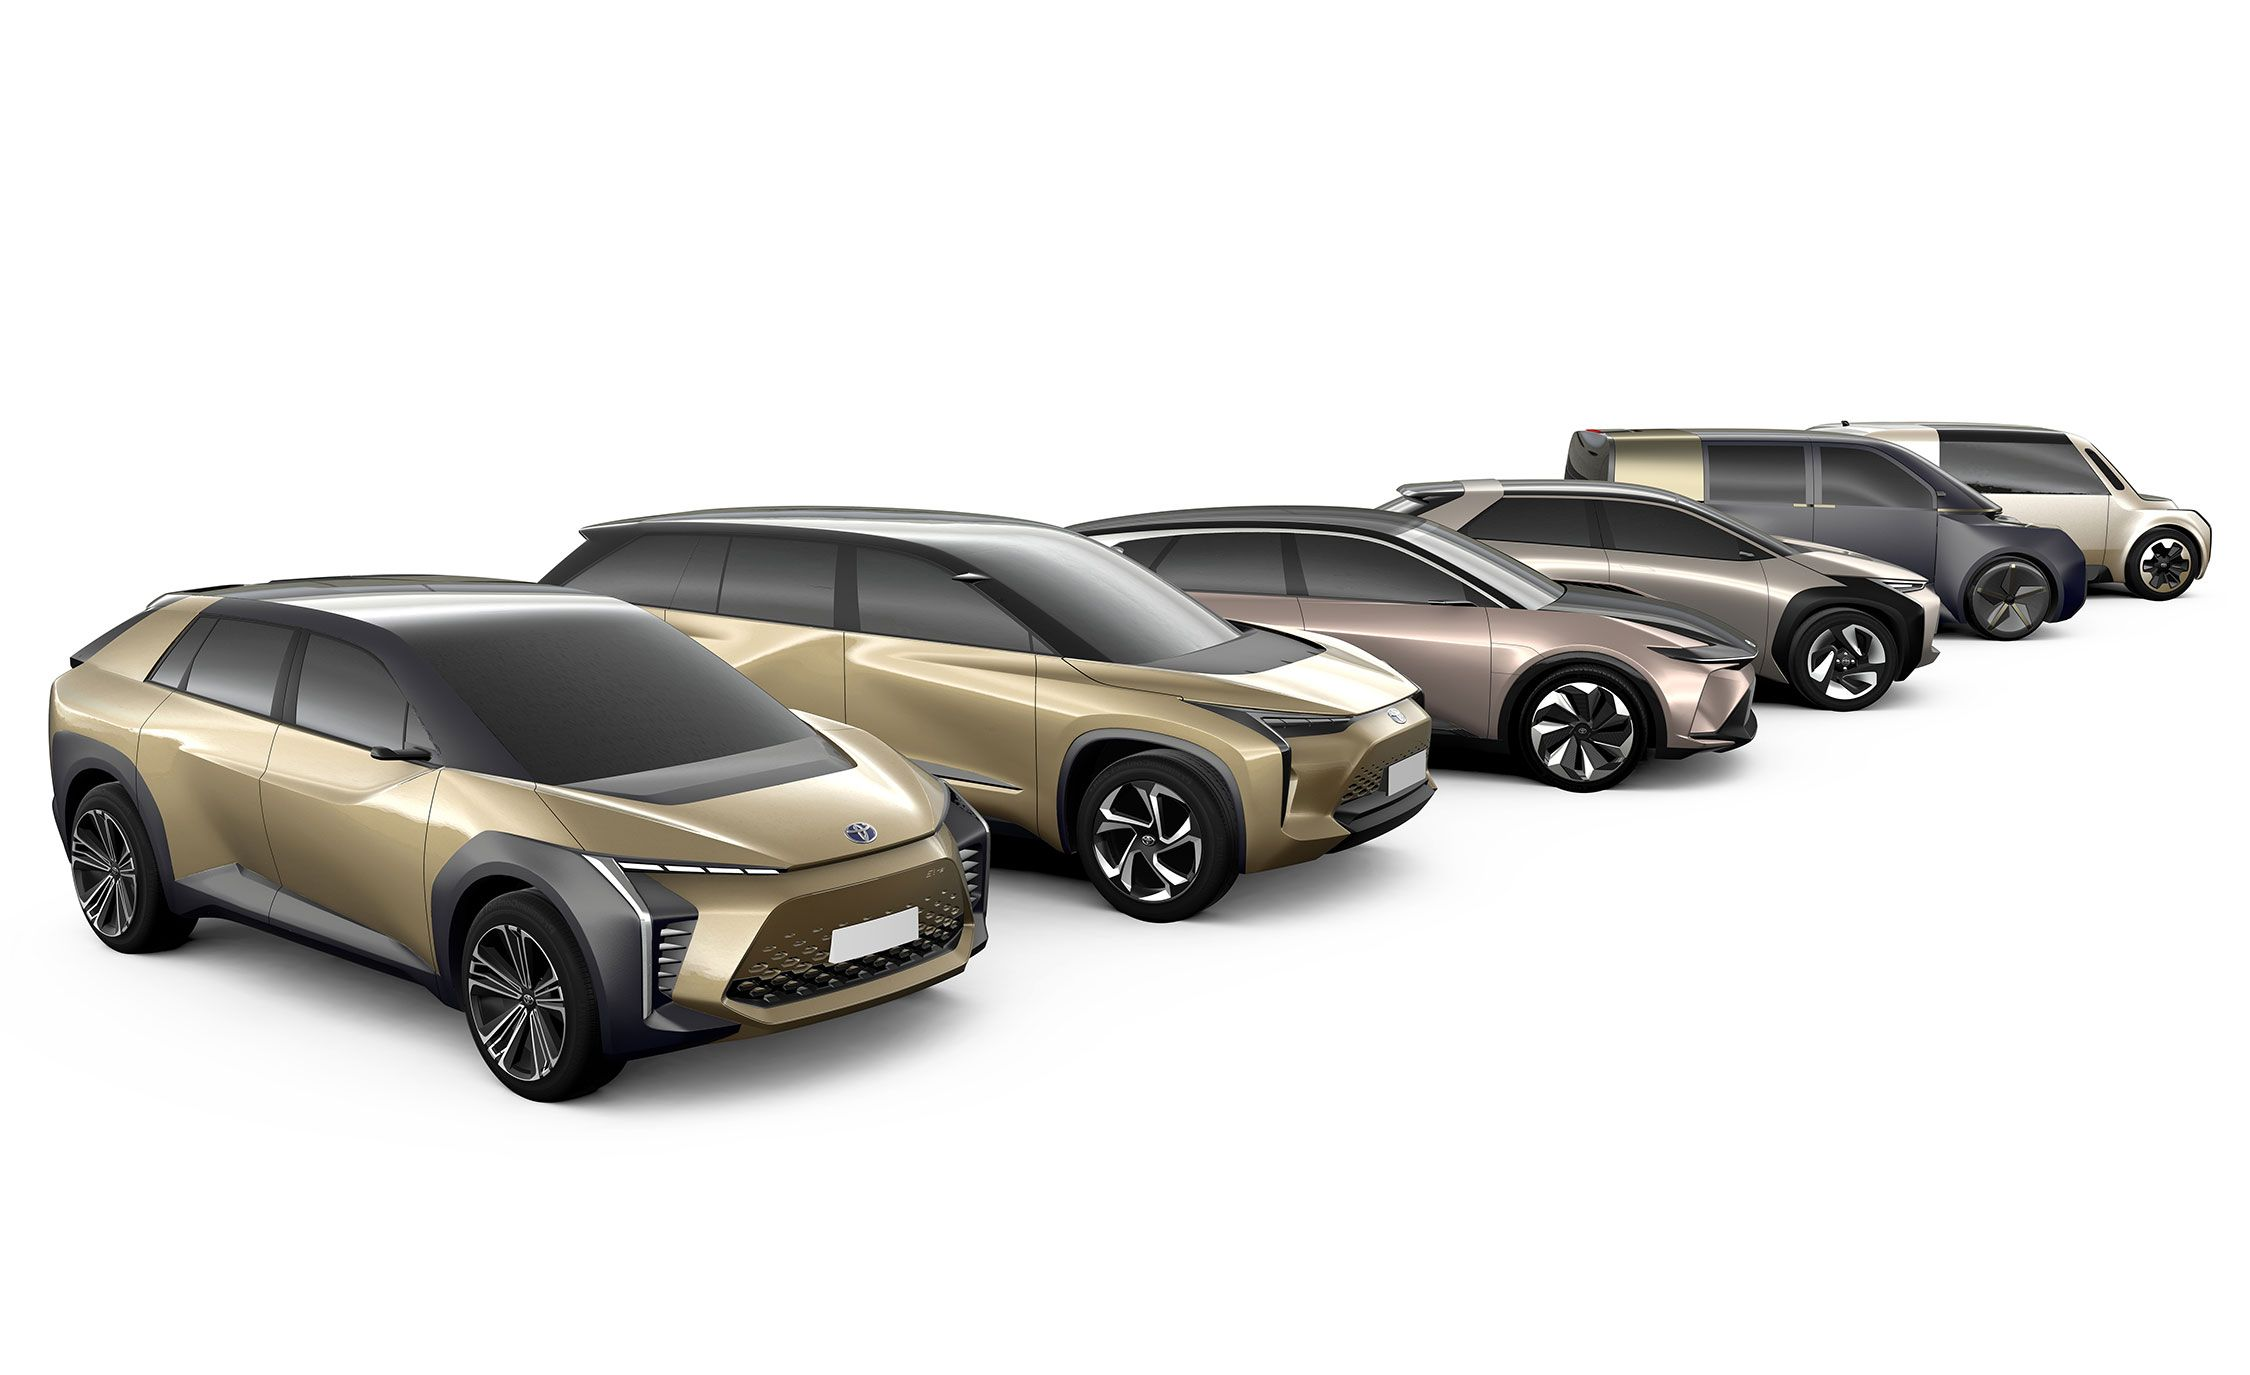 Toyota will be selling its battery vehicles under a new brand named BZ, which stands for 'Beyond Zero' and refers to harmful emissions.